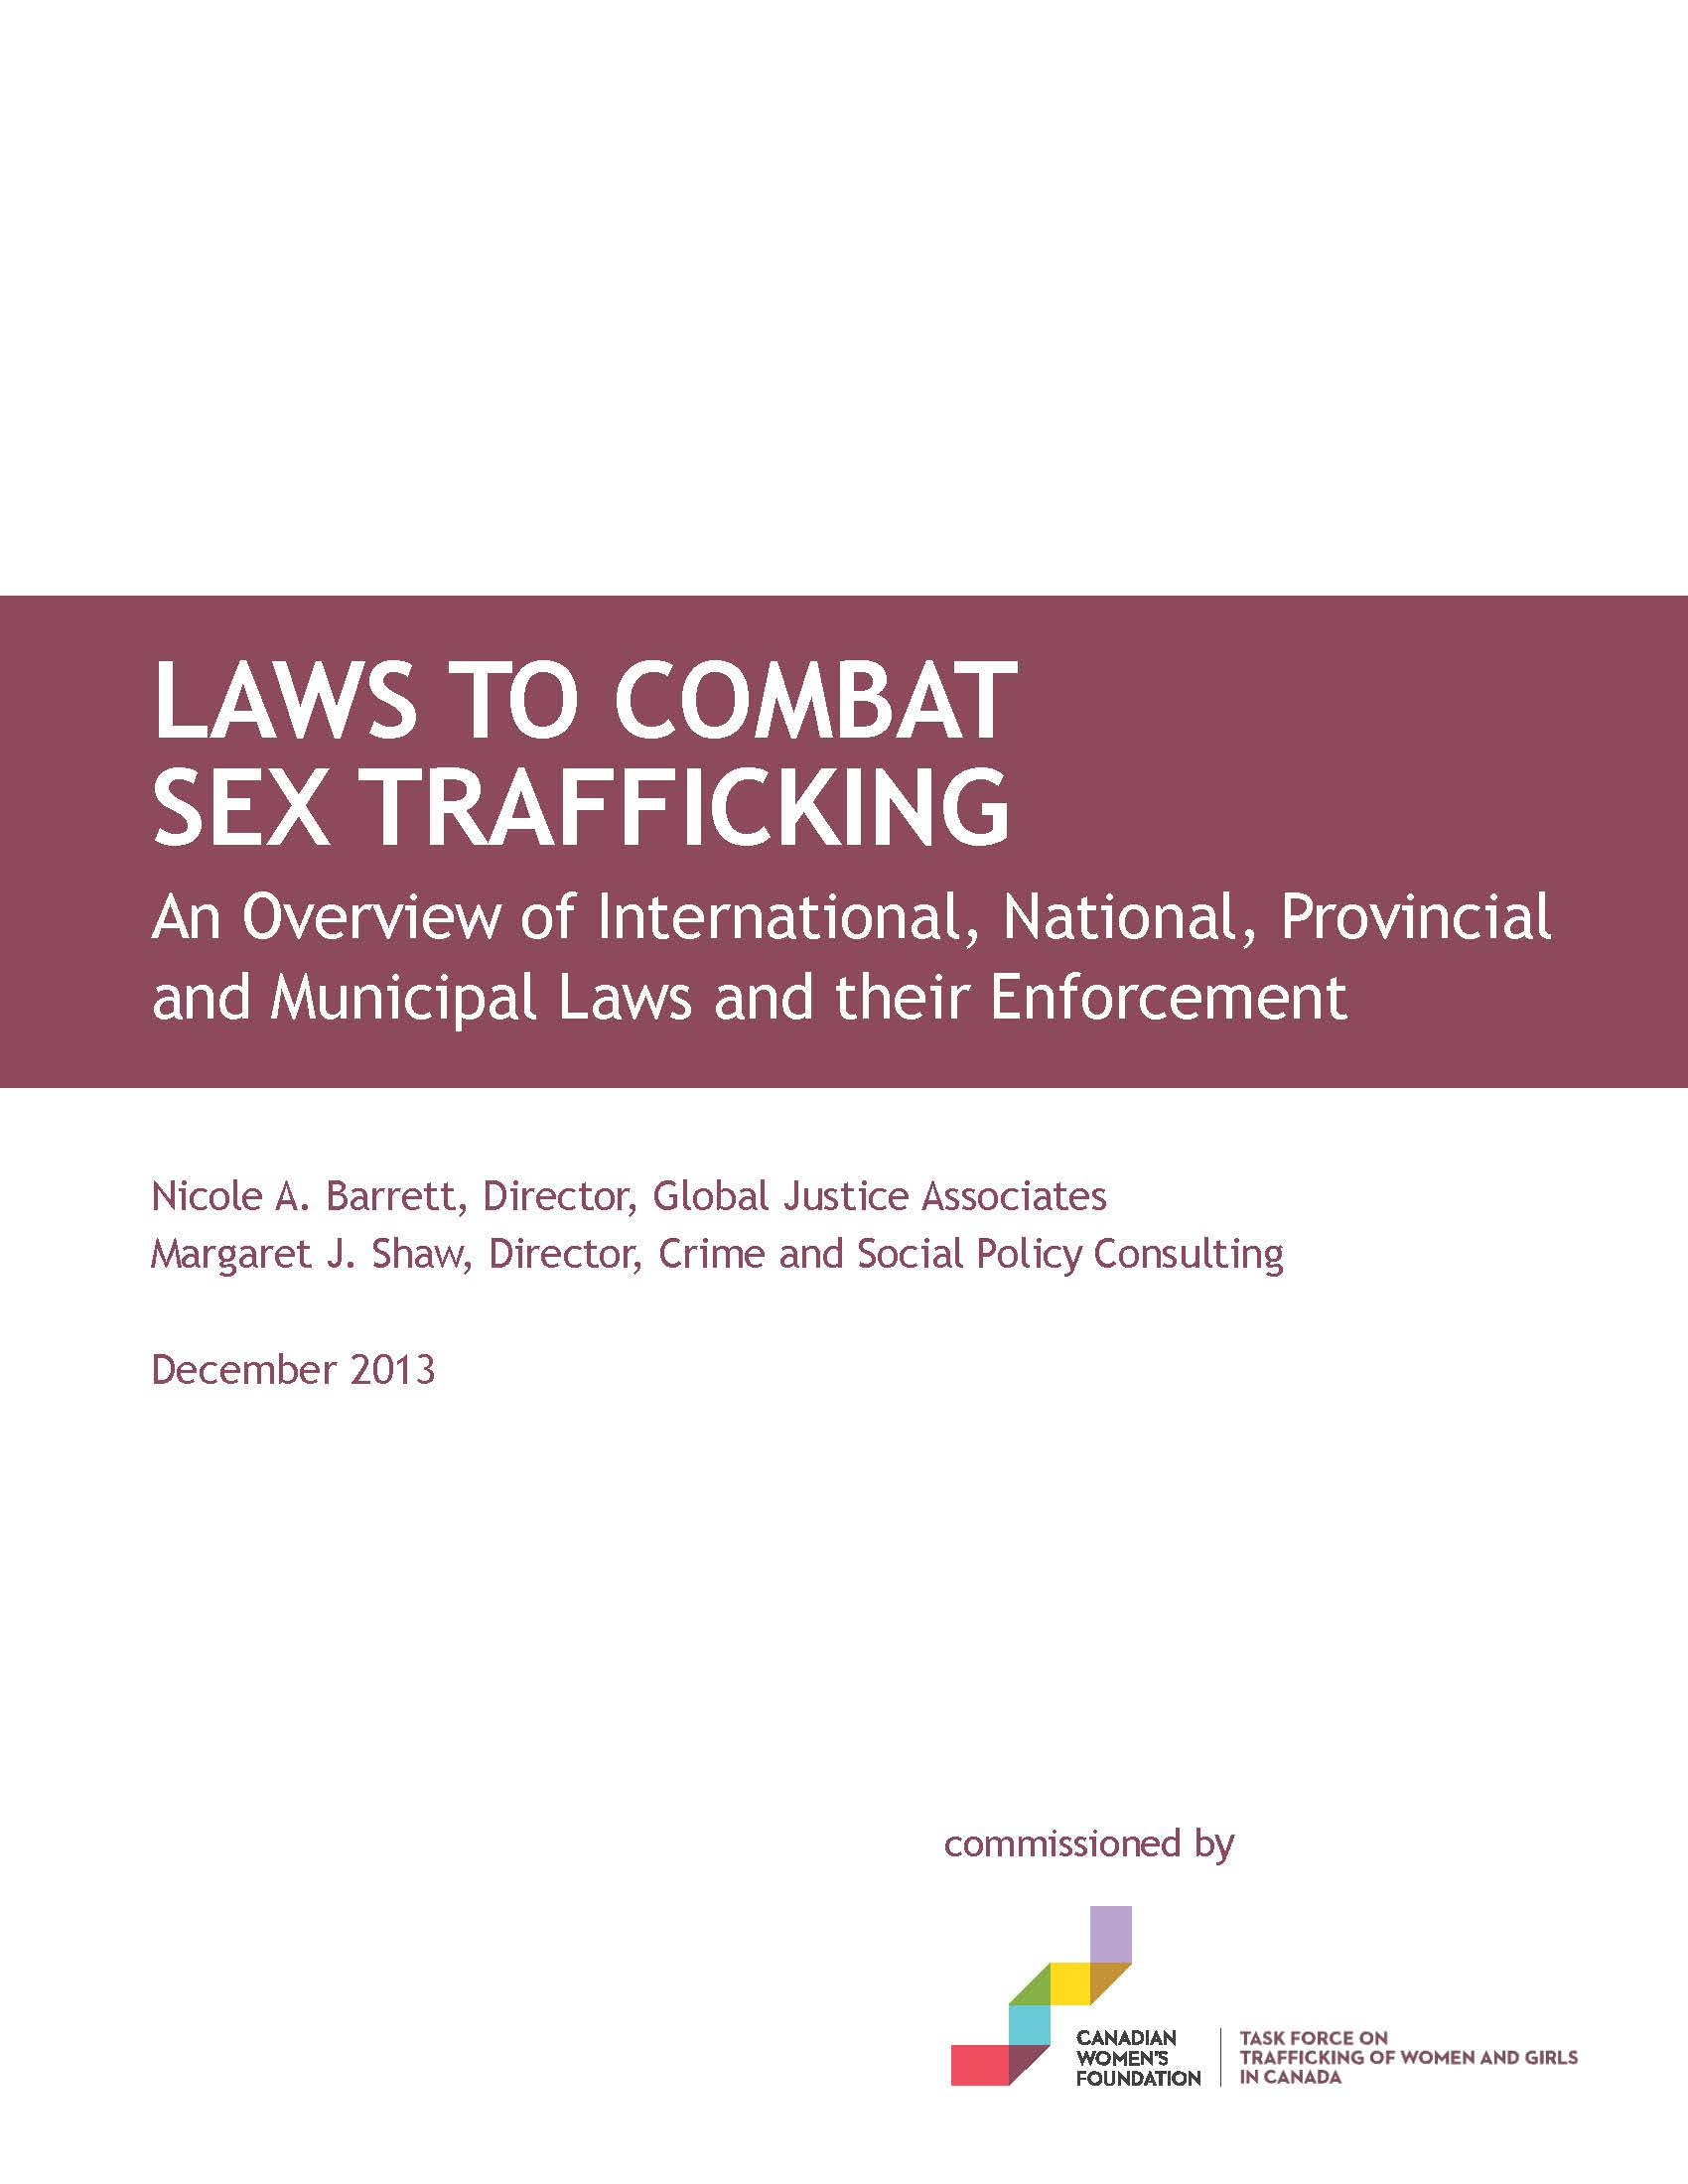 An Overview of International, National, Provincial & Municipal Laws & their Enforcement, 2013